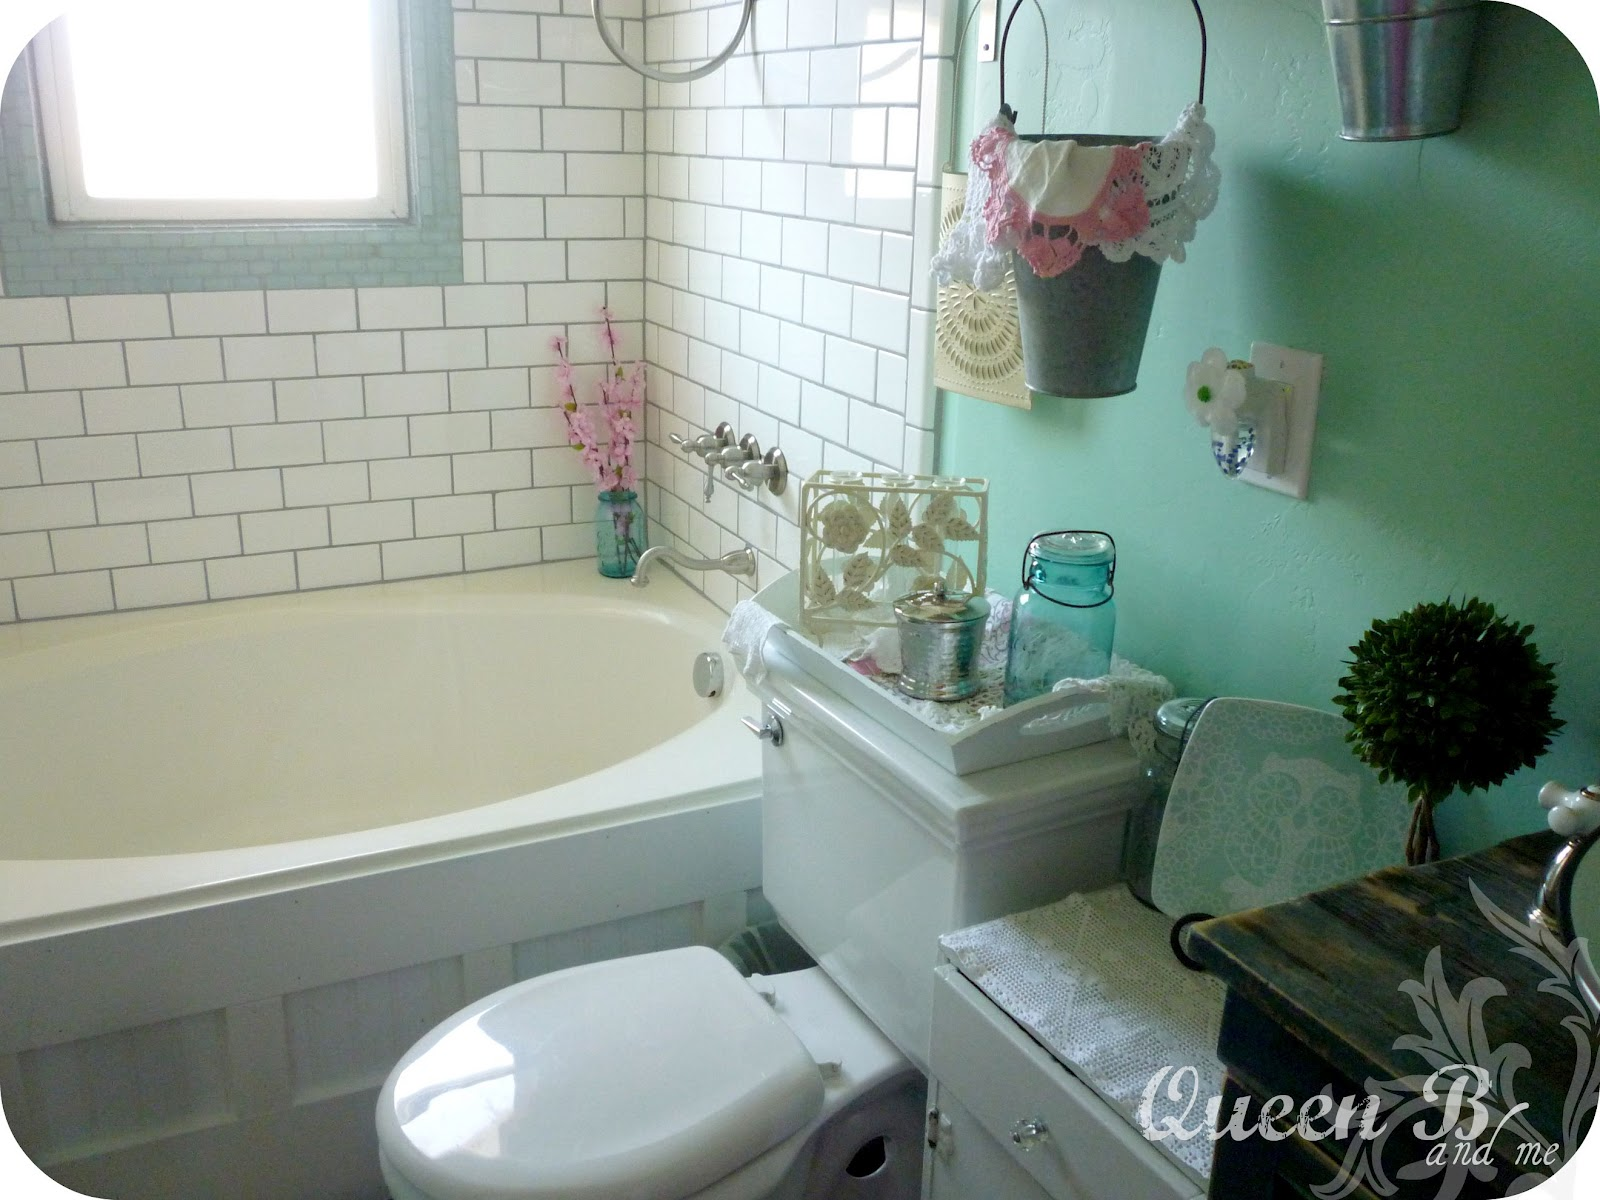 Dorable How To Install Tile Board In The Bathroom Pictures - Bathtub ...